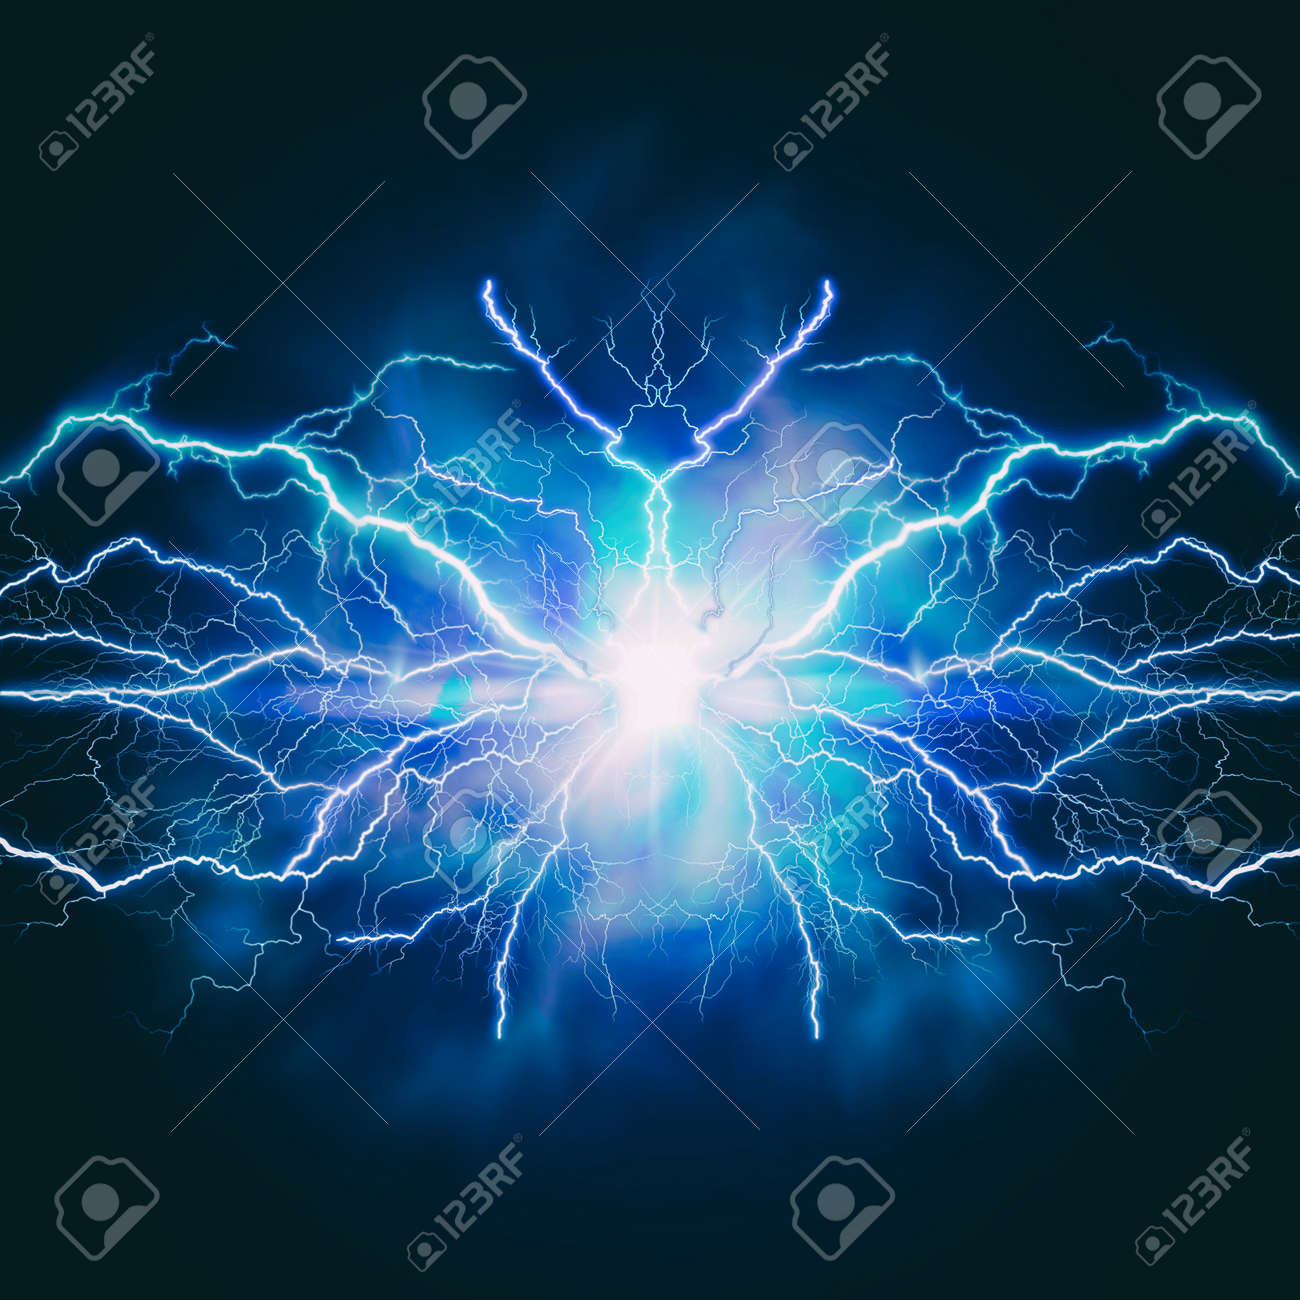 High voltage electric bolt. Teleport flash. Abstract power and energy backgrounds - 159256959